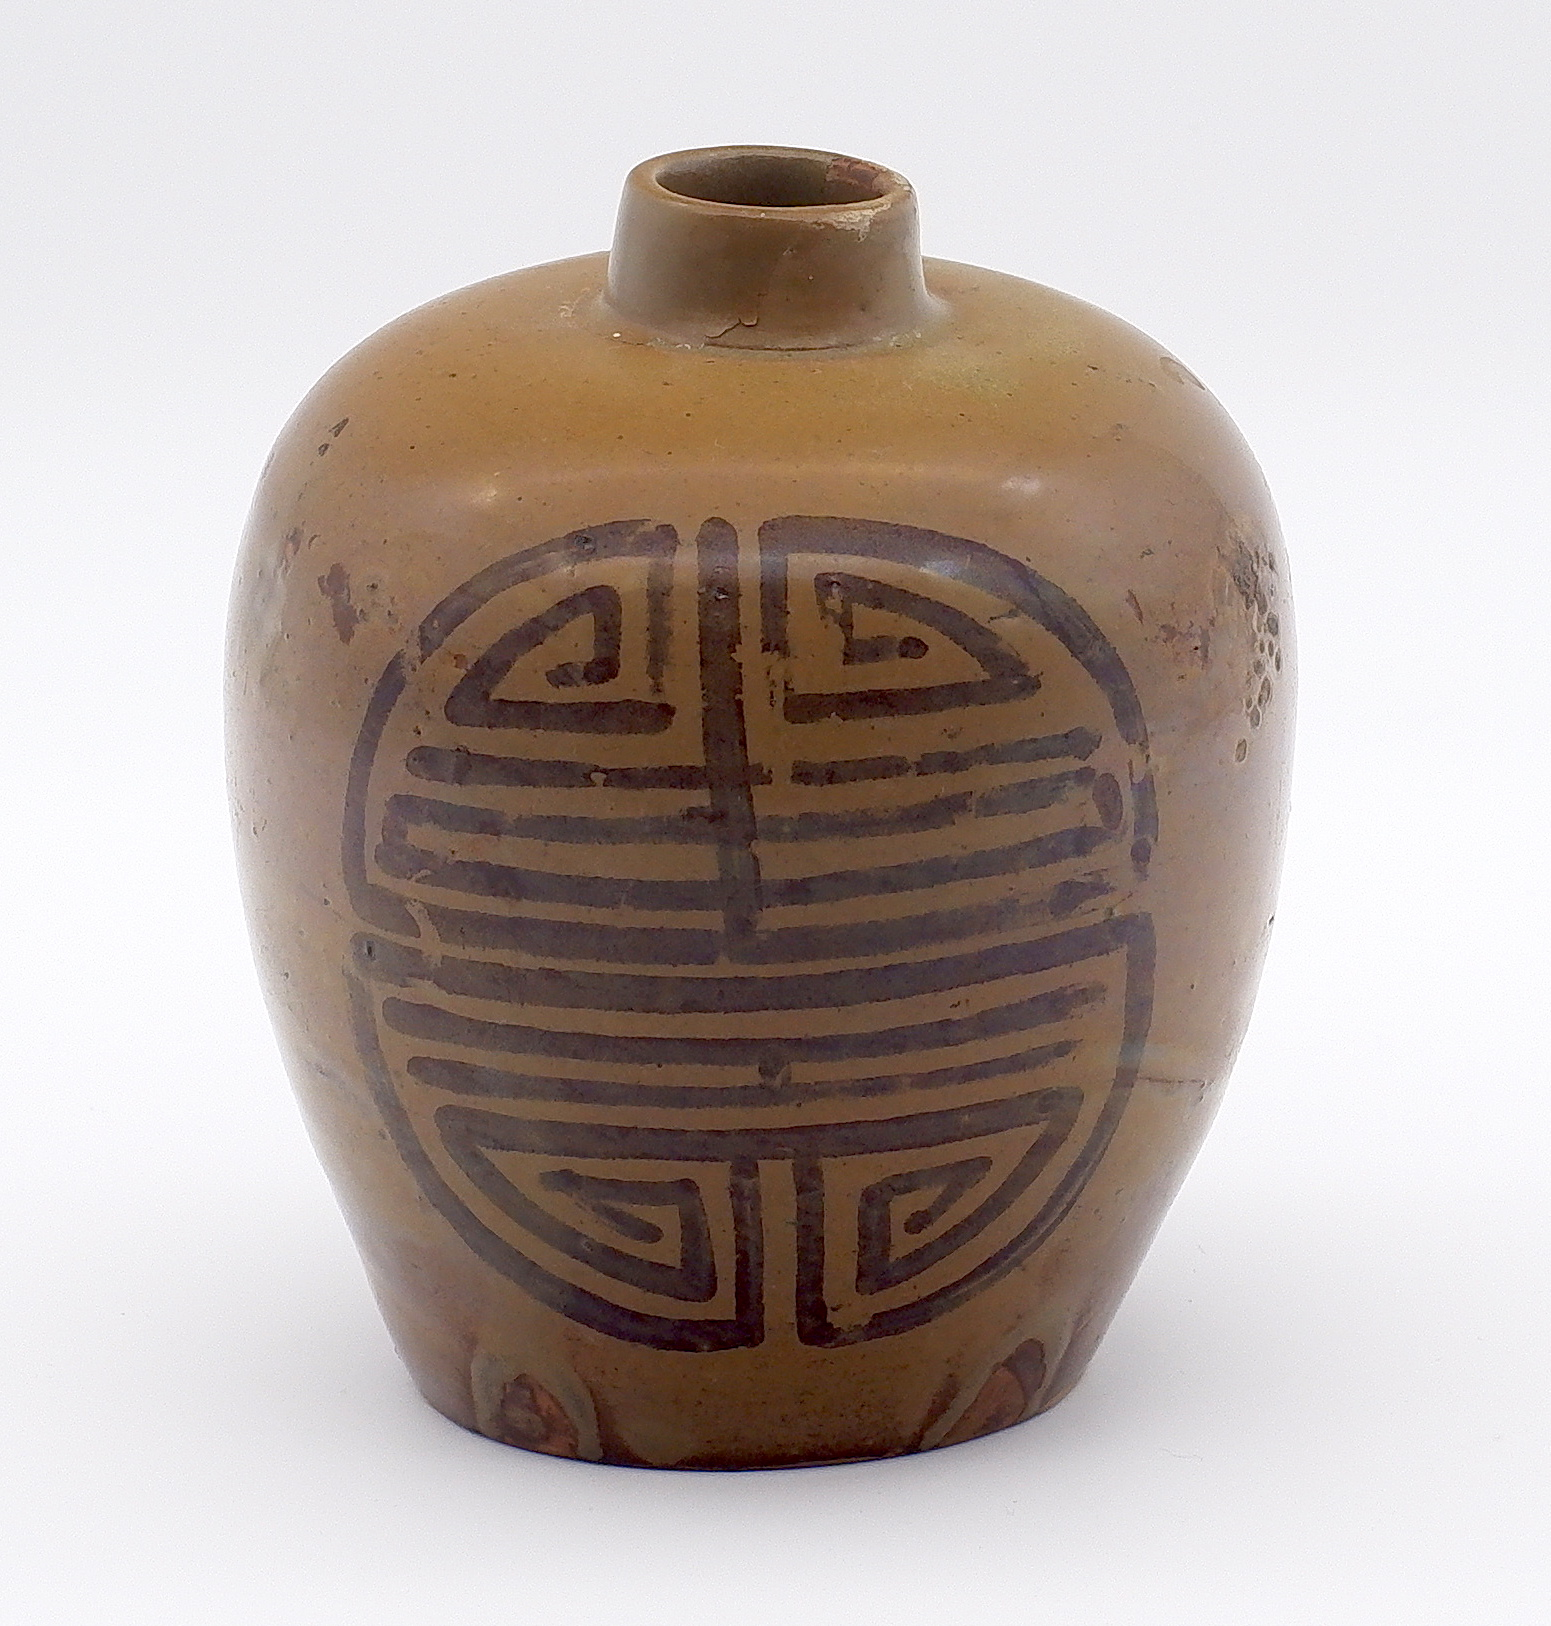 'Antique Chinese Medicine Jar with Iron Glaze Painted with Shou Symbol'